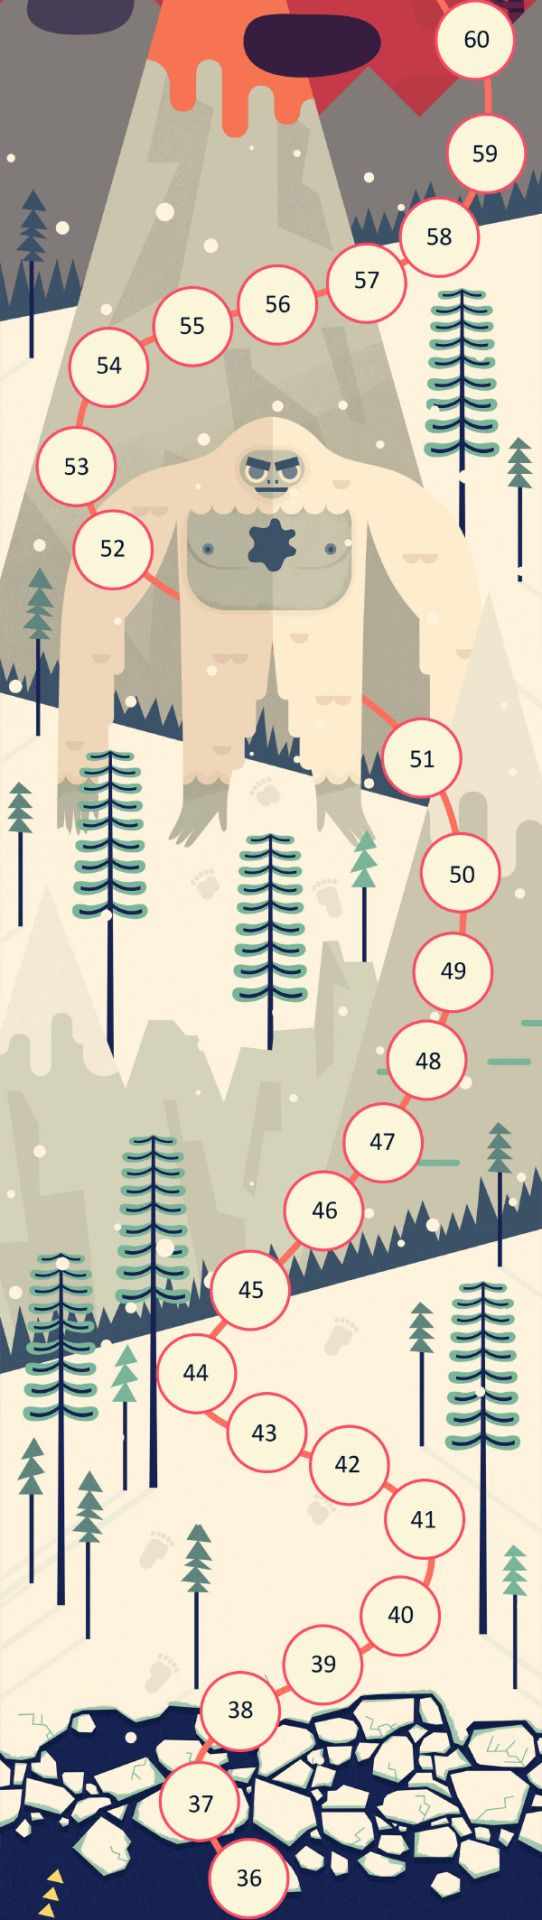 Here is a roundup of the first 9 maps that I created for Two Dots. See how the whole lot look together here:http://www.owendavey.com/TwoDotsor get the game for free and see them all in action:http://weplaydots.com/twodots.html